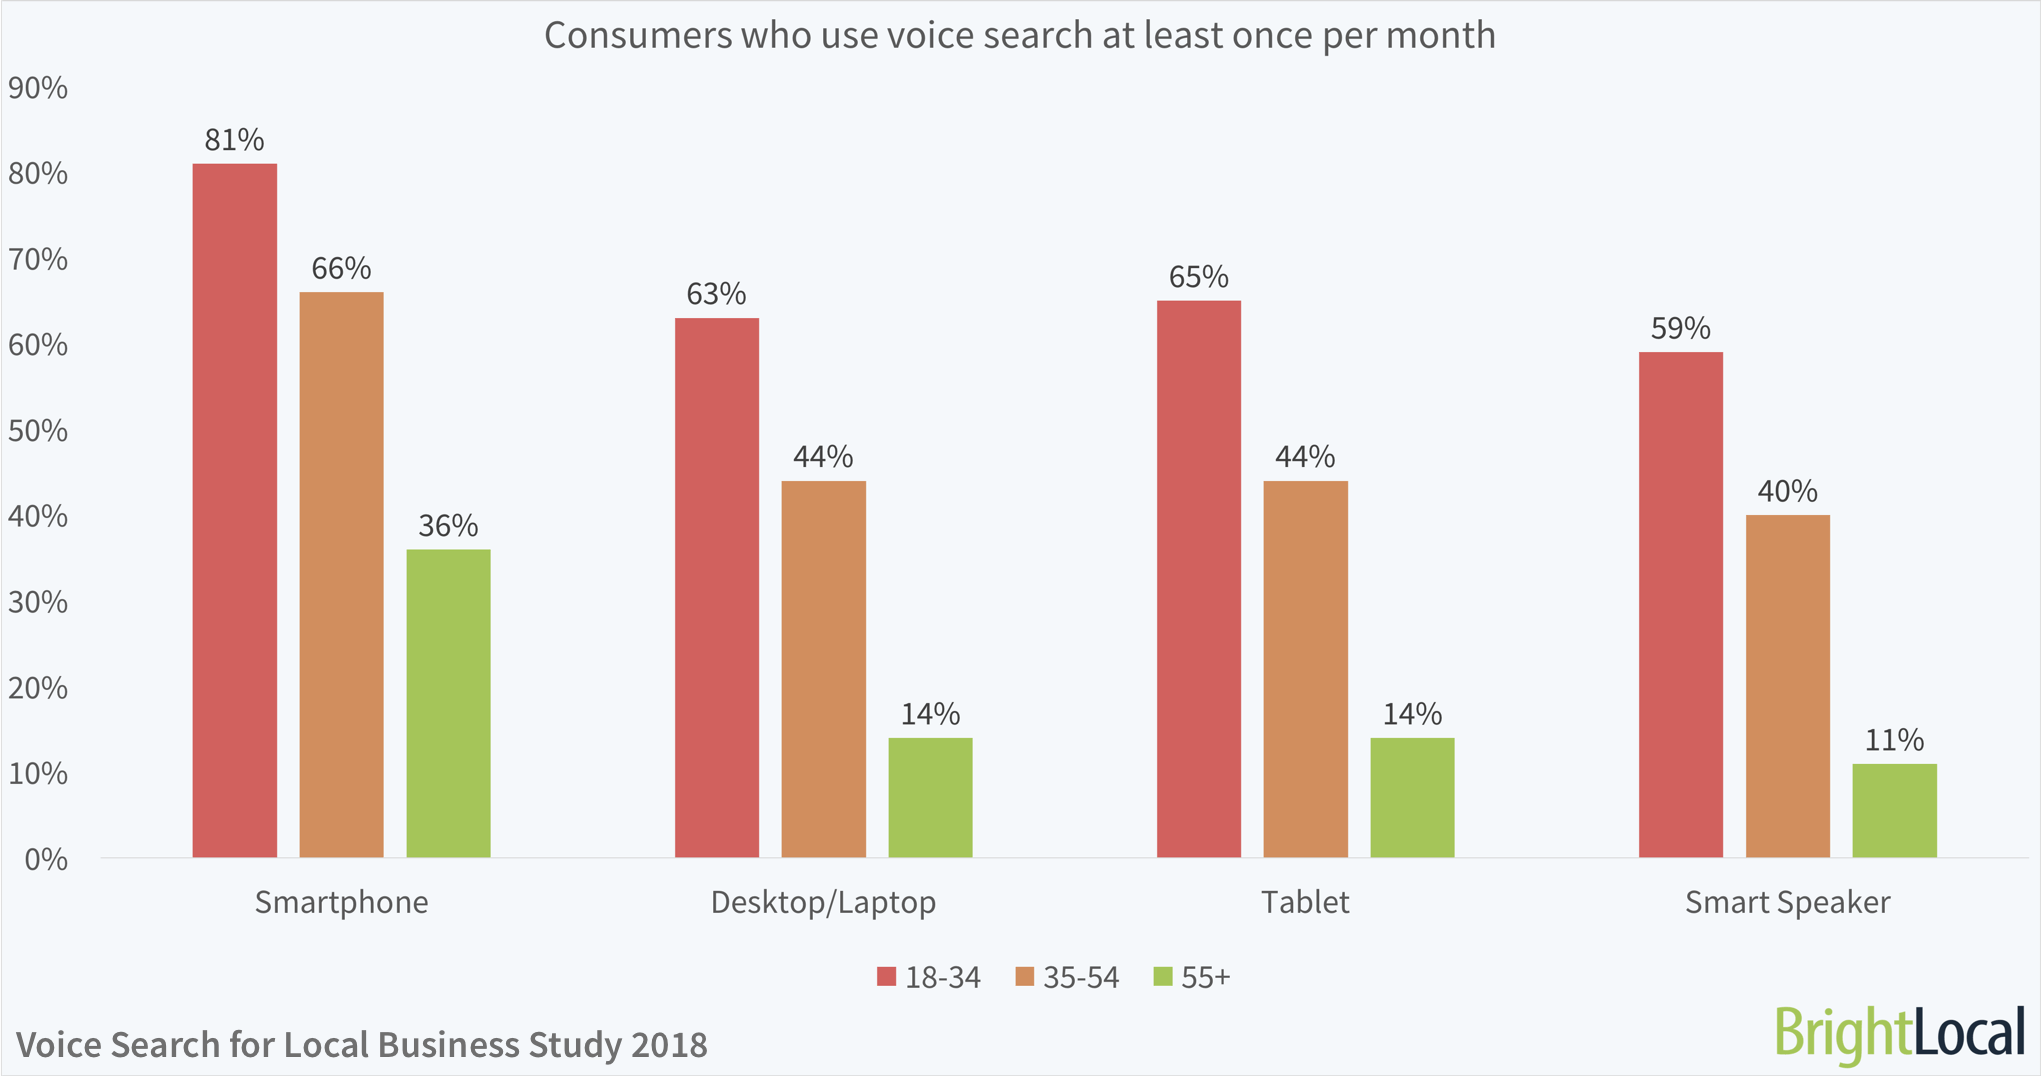 Consumers who use voice search at least once per month